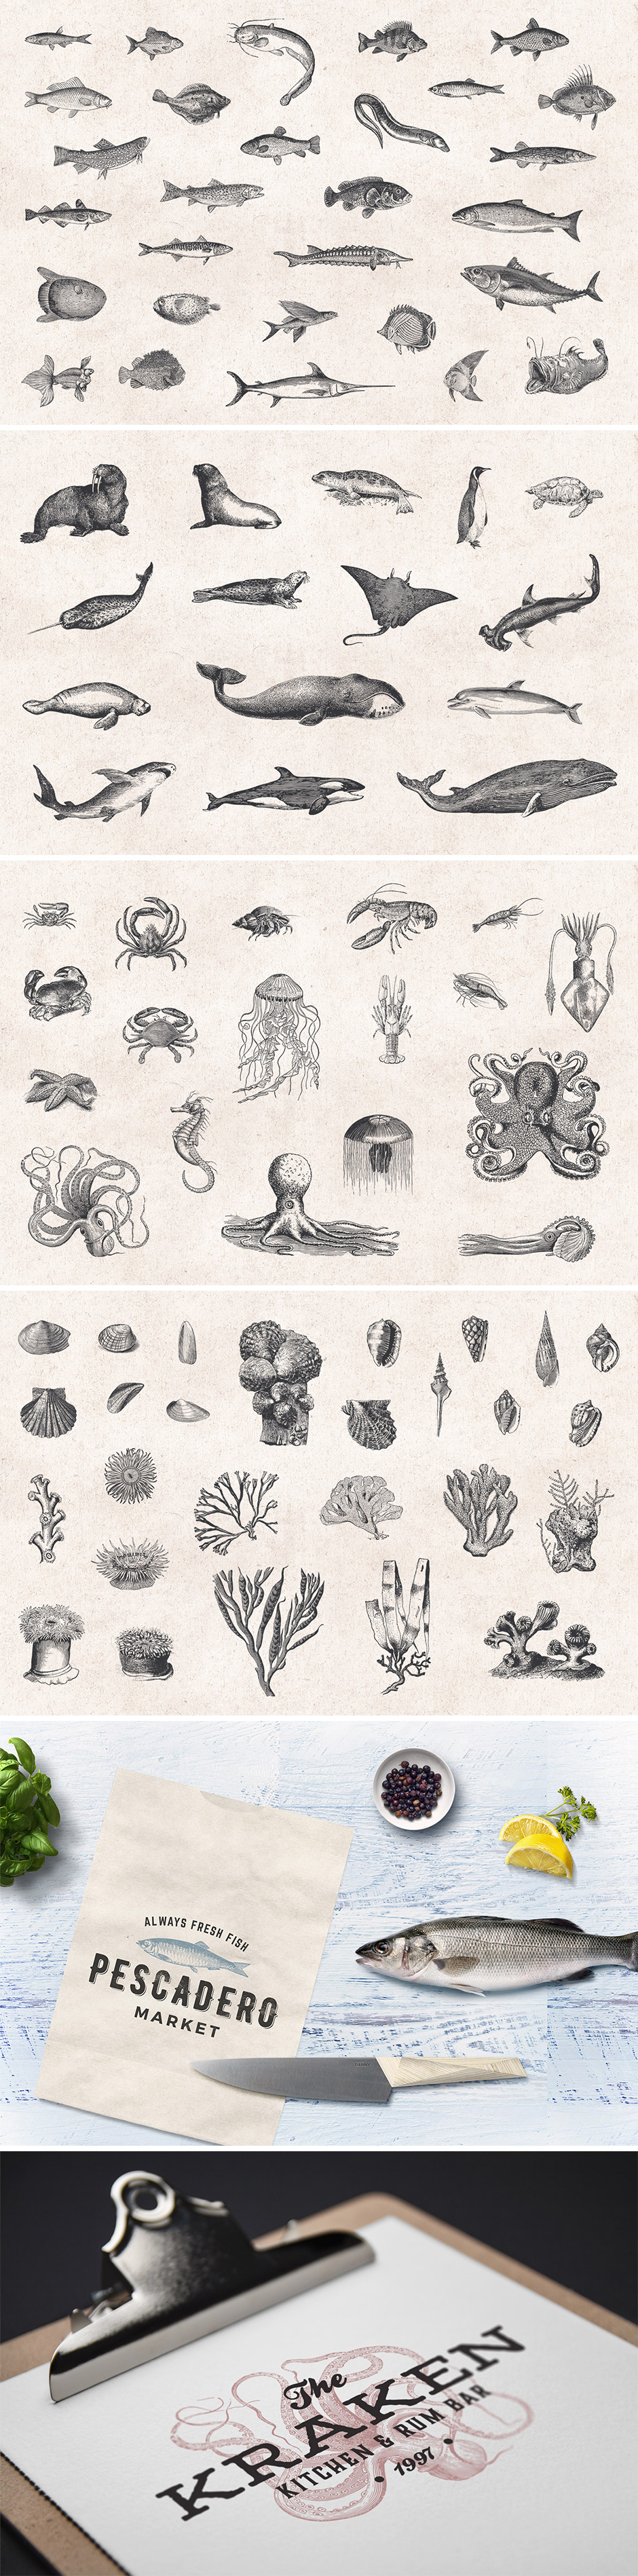 Fishes & Sea Life Engravings